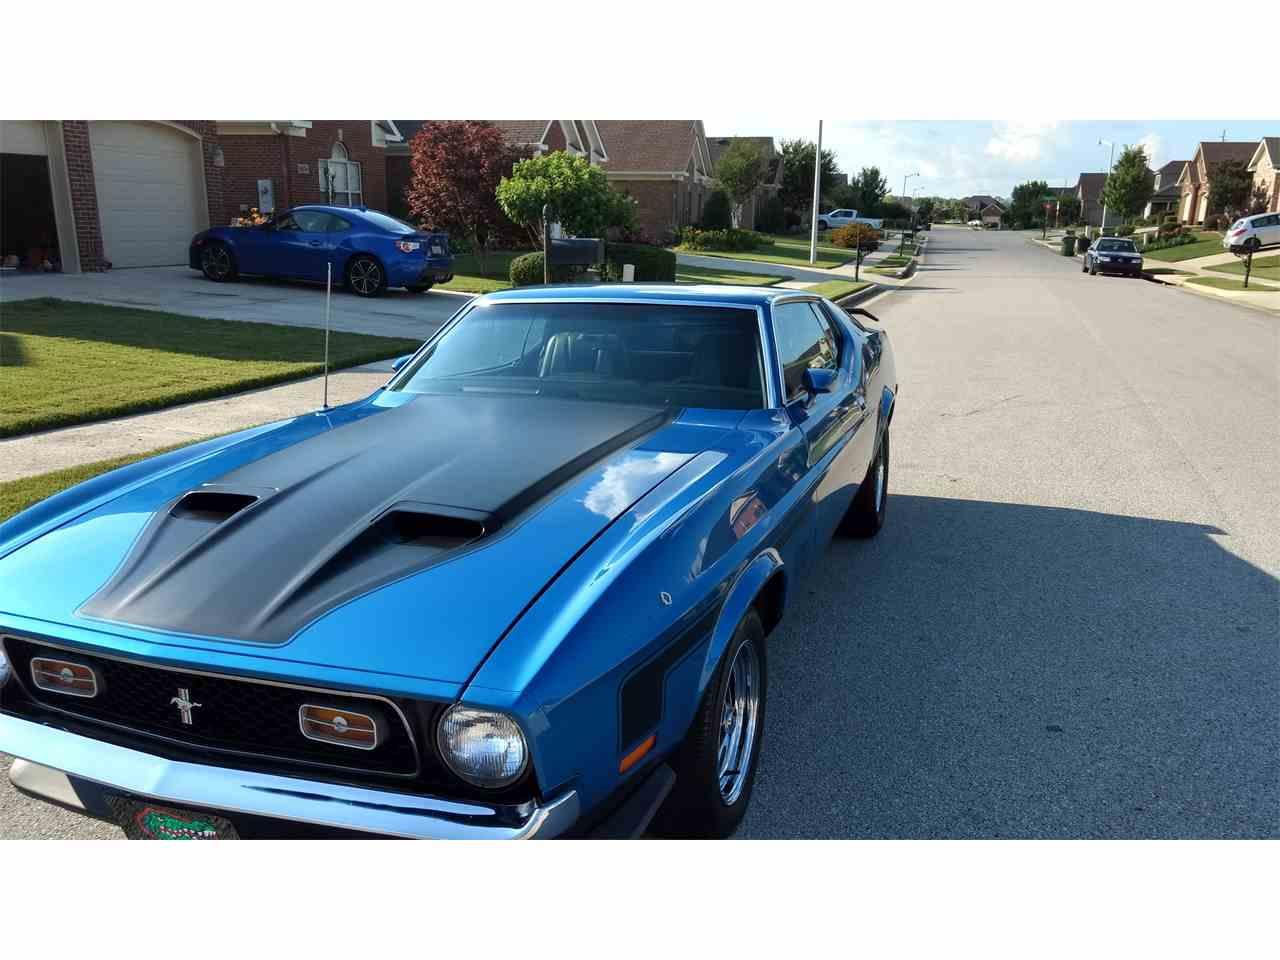 Large Picture of 1972 Ford Mustang located in Huntsville Alabama - $25,500.00 - LFK6